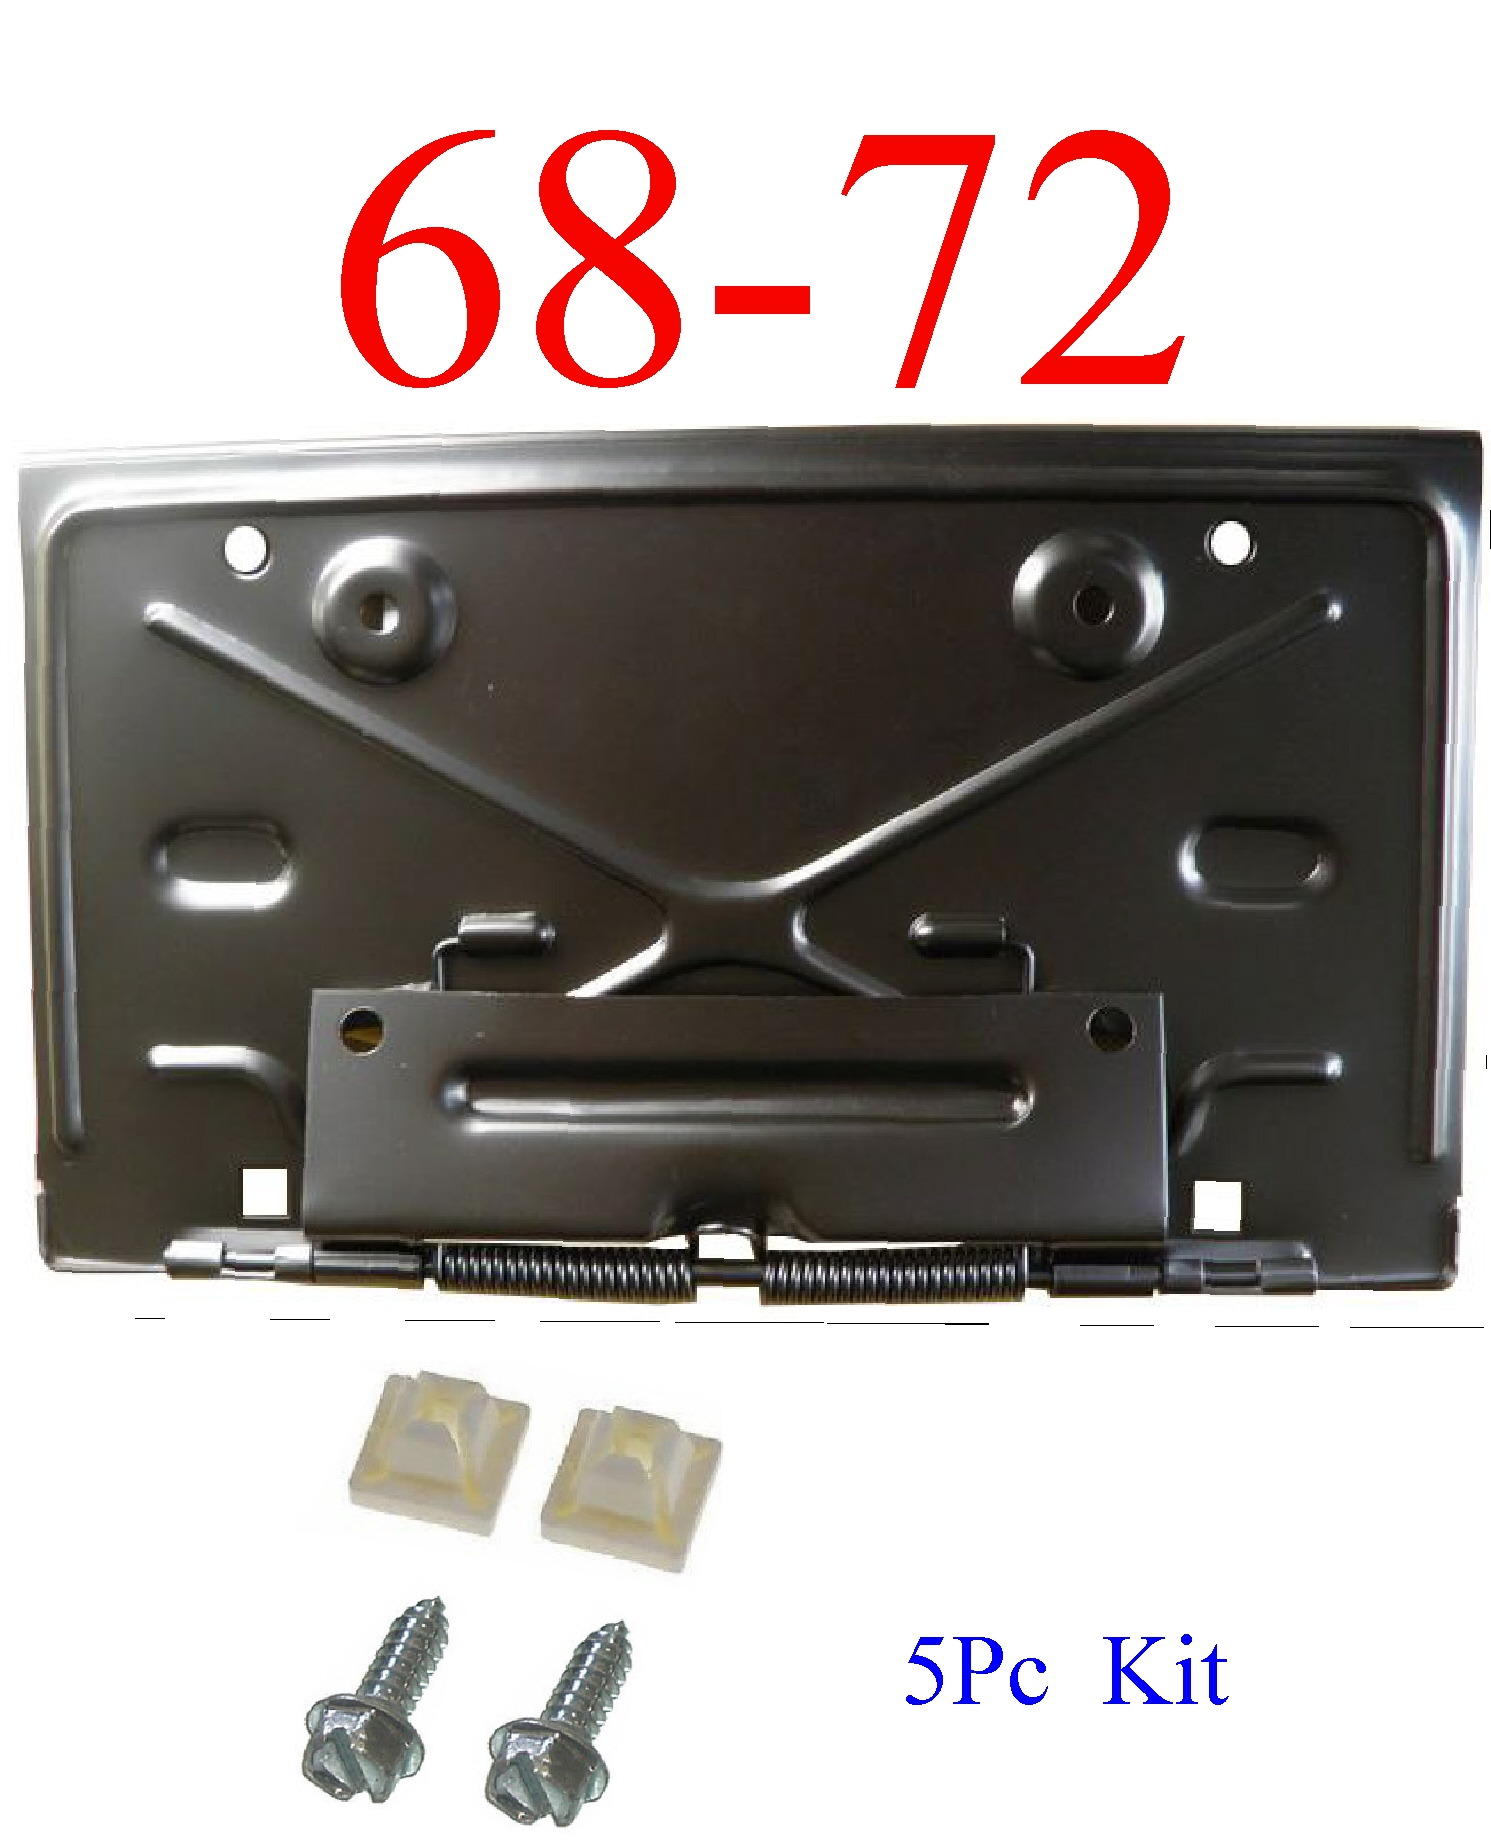 68-72 Rear Fold Down License Plate Bracket